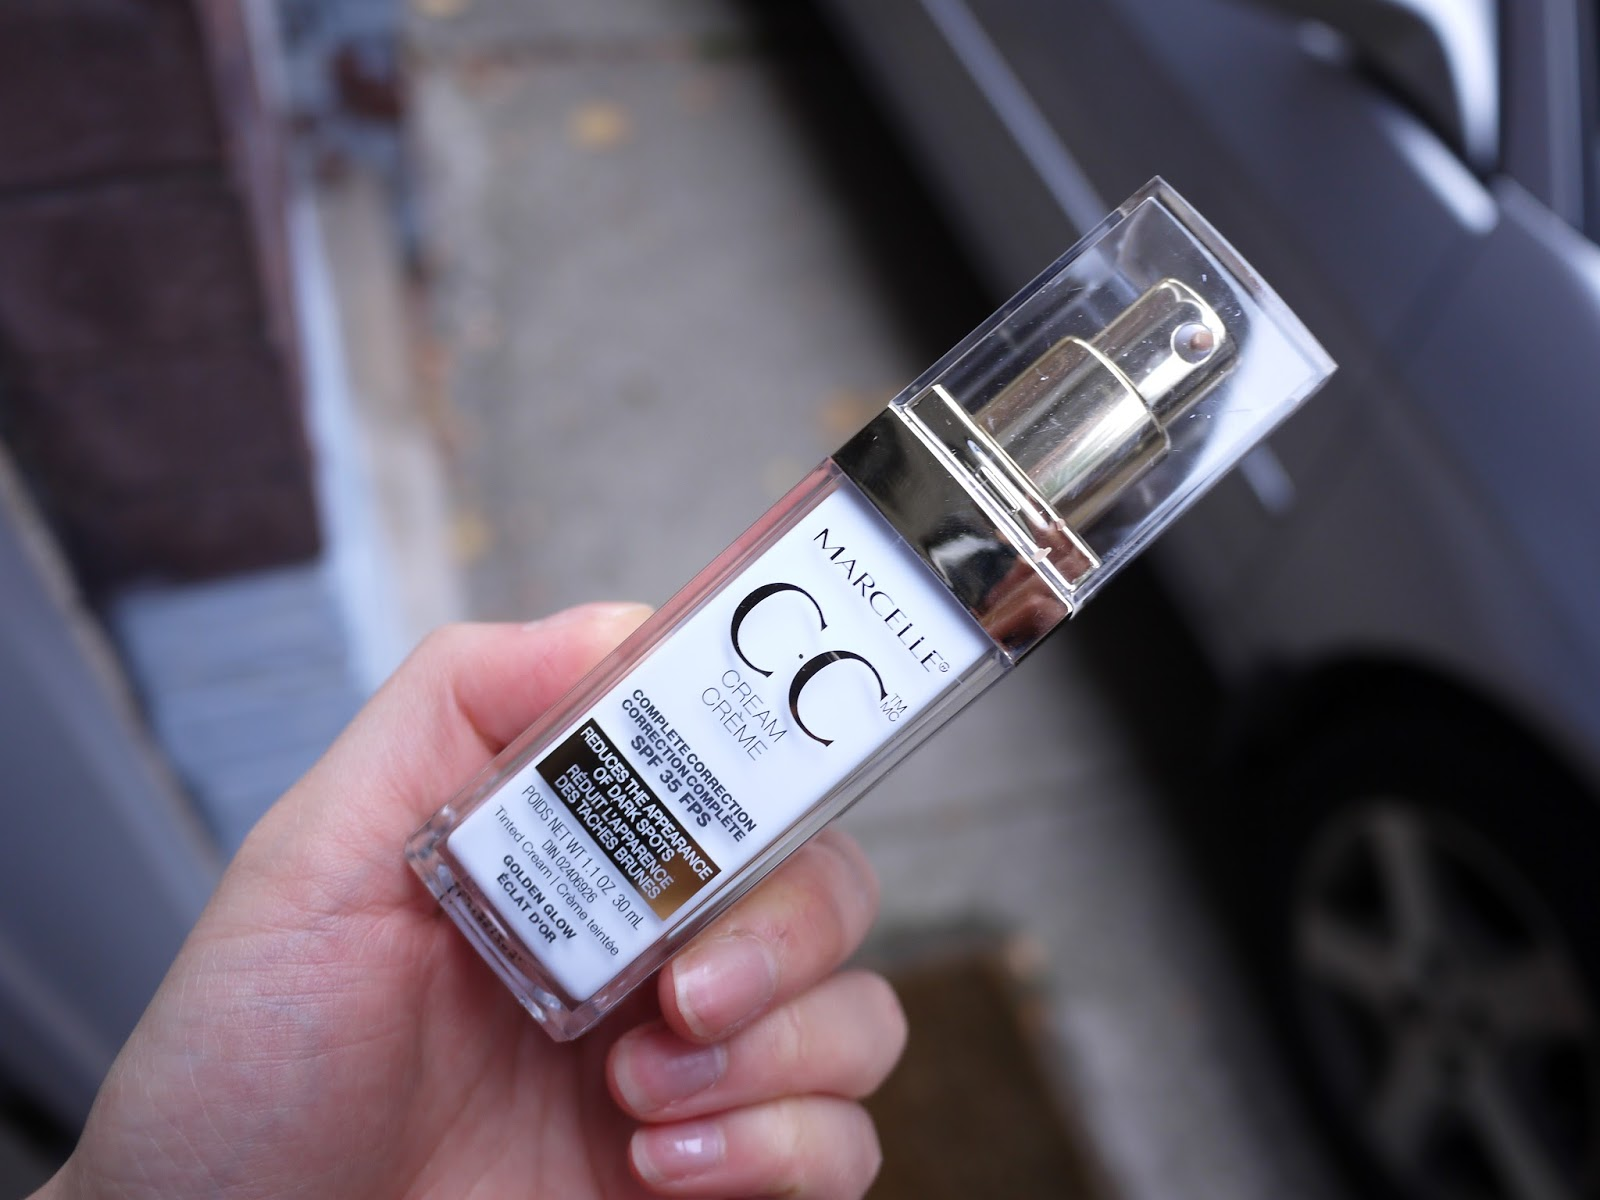 Marcelle CC Cream Golden Glow review